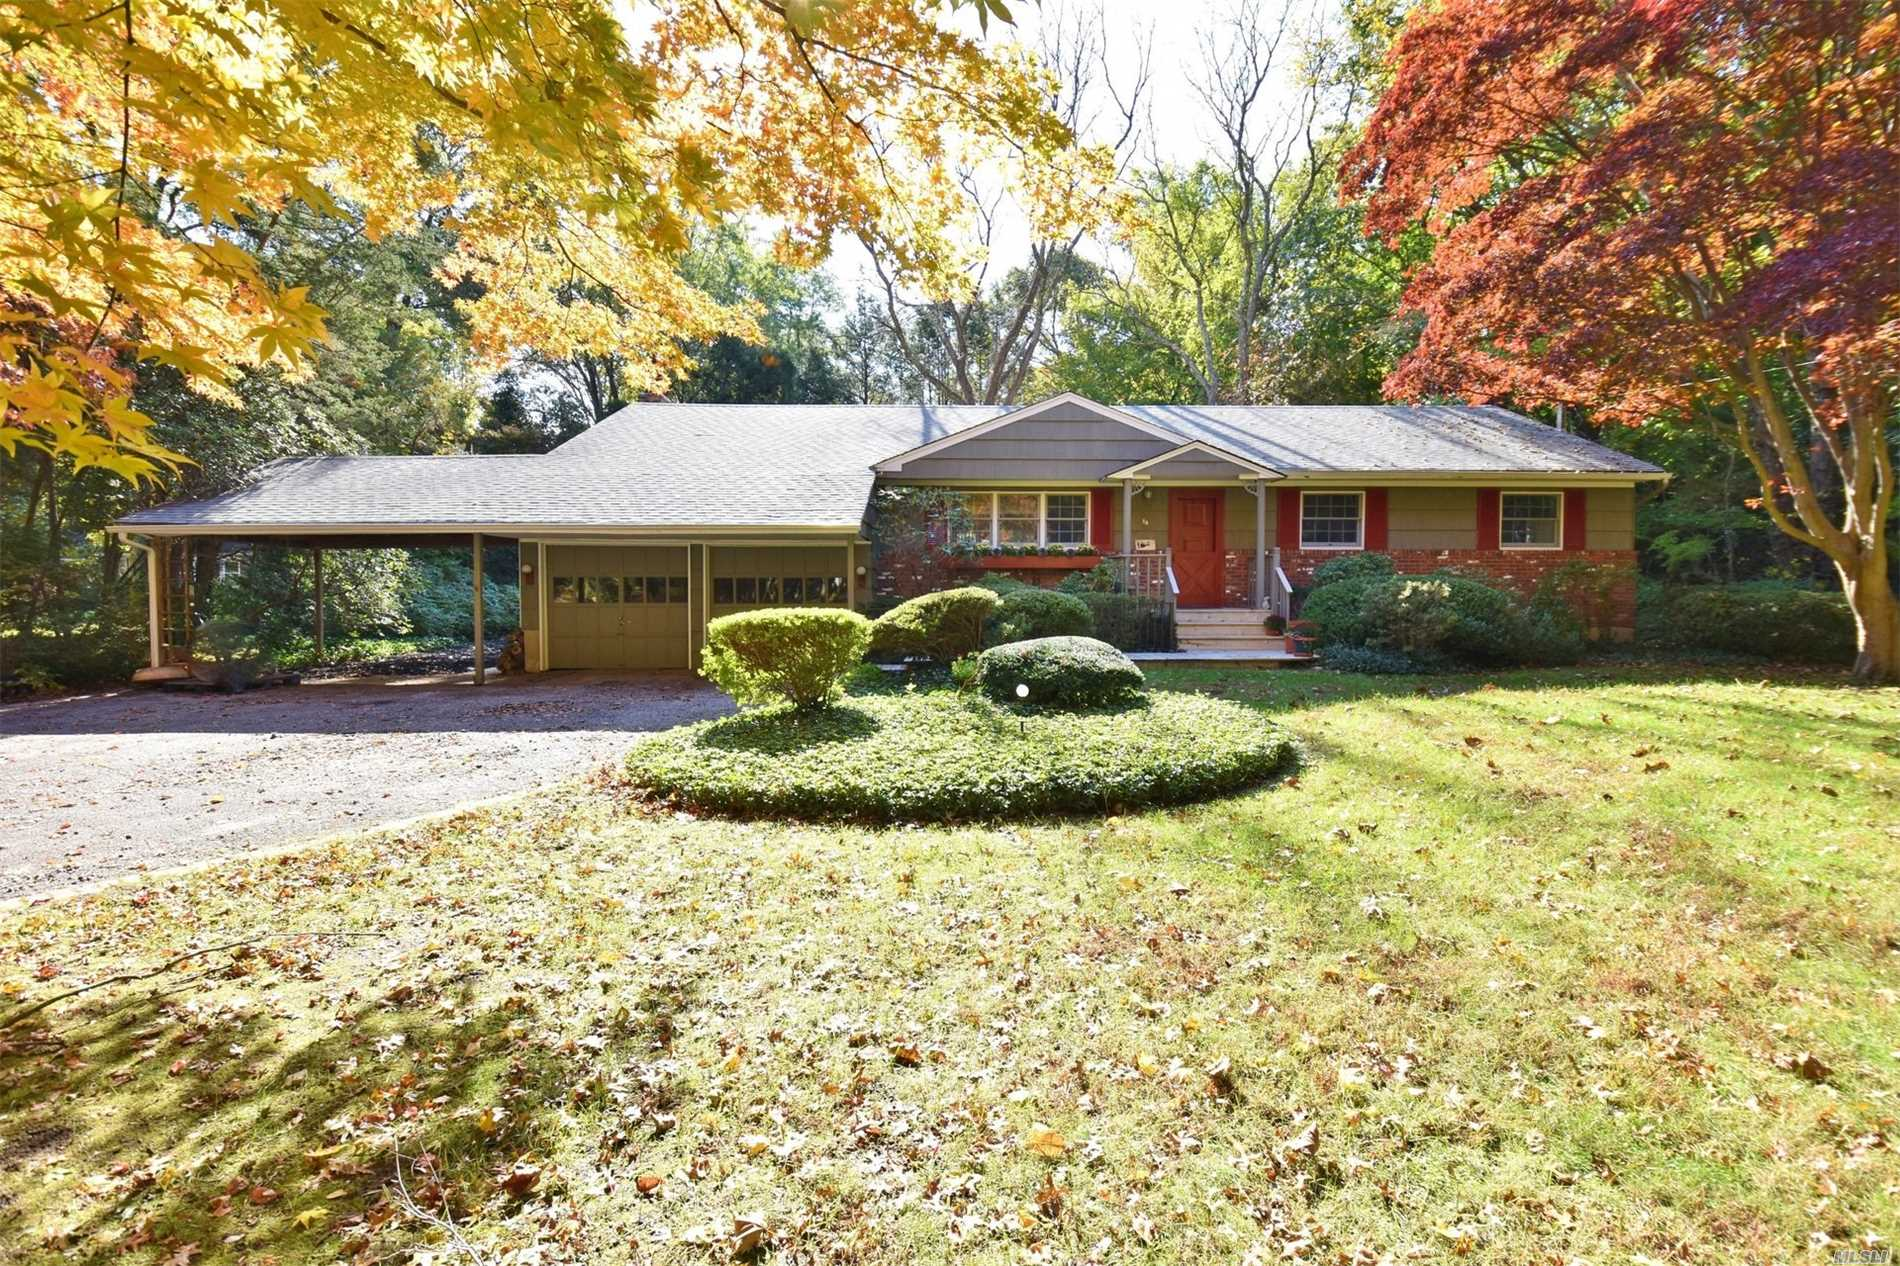 Incredible Opportunity In Half Hollow School District For A Charming Ranch On A Beautiful Acre Of Flat Treed, Parklike Property With Mature Perennial Gardens. Hardwood Floors, Den With Fireplace, Freshly Painted. Plenty Of Room To Expand And Make Your Own! Two Car Garage Full Basement. Taxes Being Grieved!!